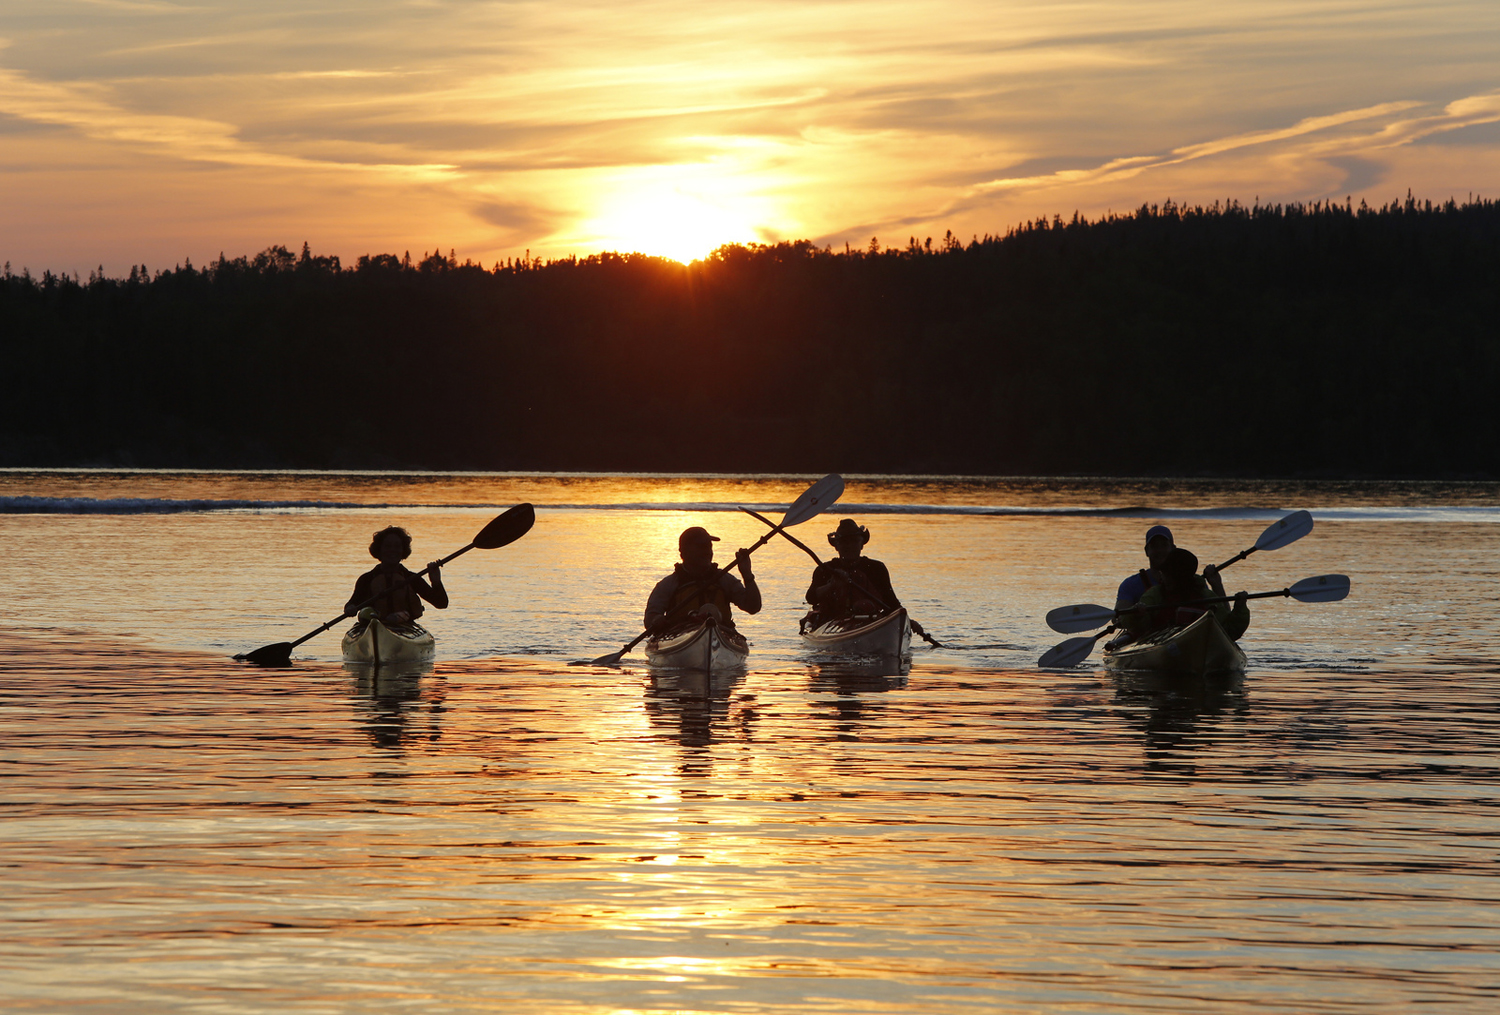 canoeing on lake at sunset